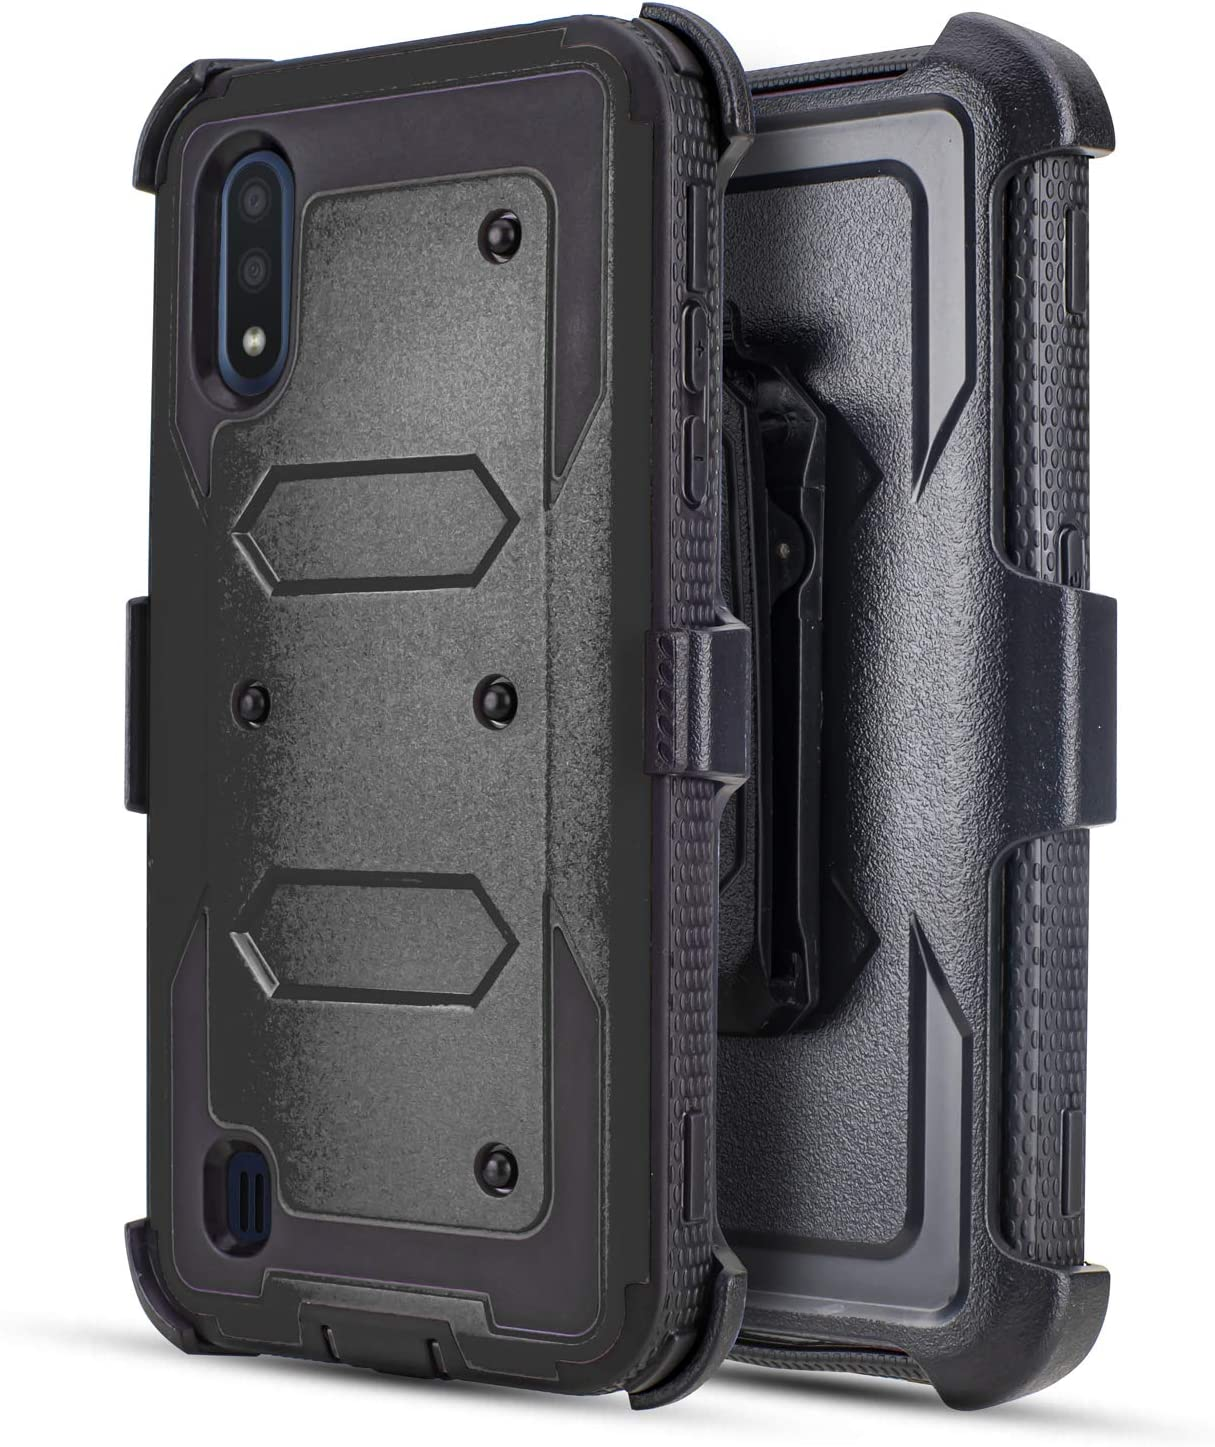 Compatible for Samsung Galaxy A01 Case, Customerfirst Case Built-in [Screen Protector] Heavy Duty Holster Cover [Belt Clip][Kickstand] (Black)